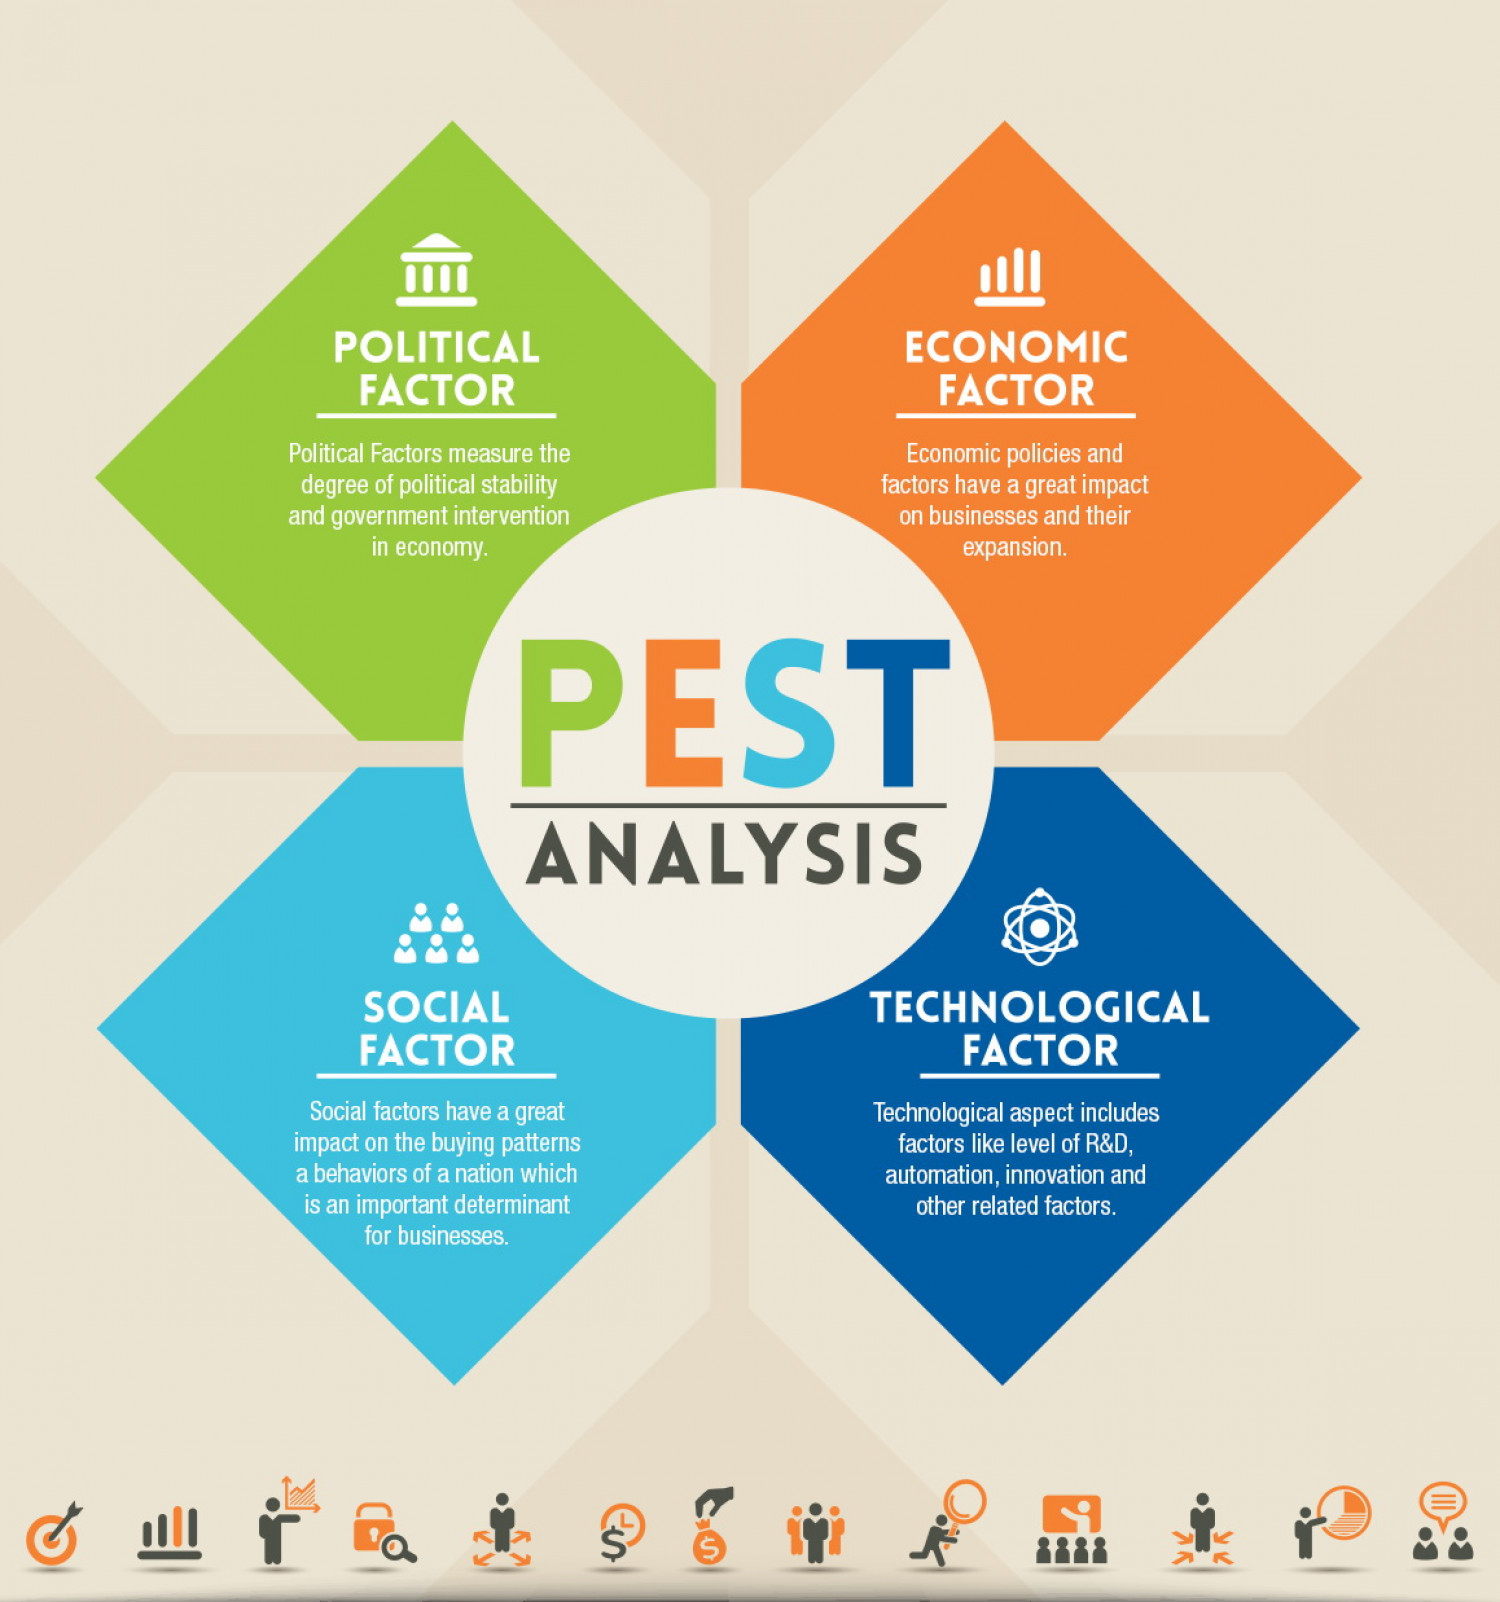 uae a steepled and swot analysis In this article we will explain how to complete a pestle analysis covering each of the parts using an example of applying the analysis  as part of a swot analysis.